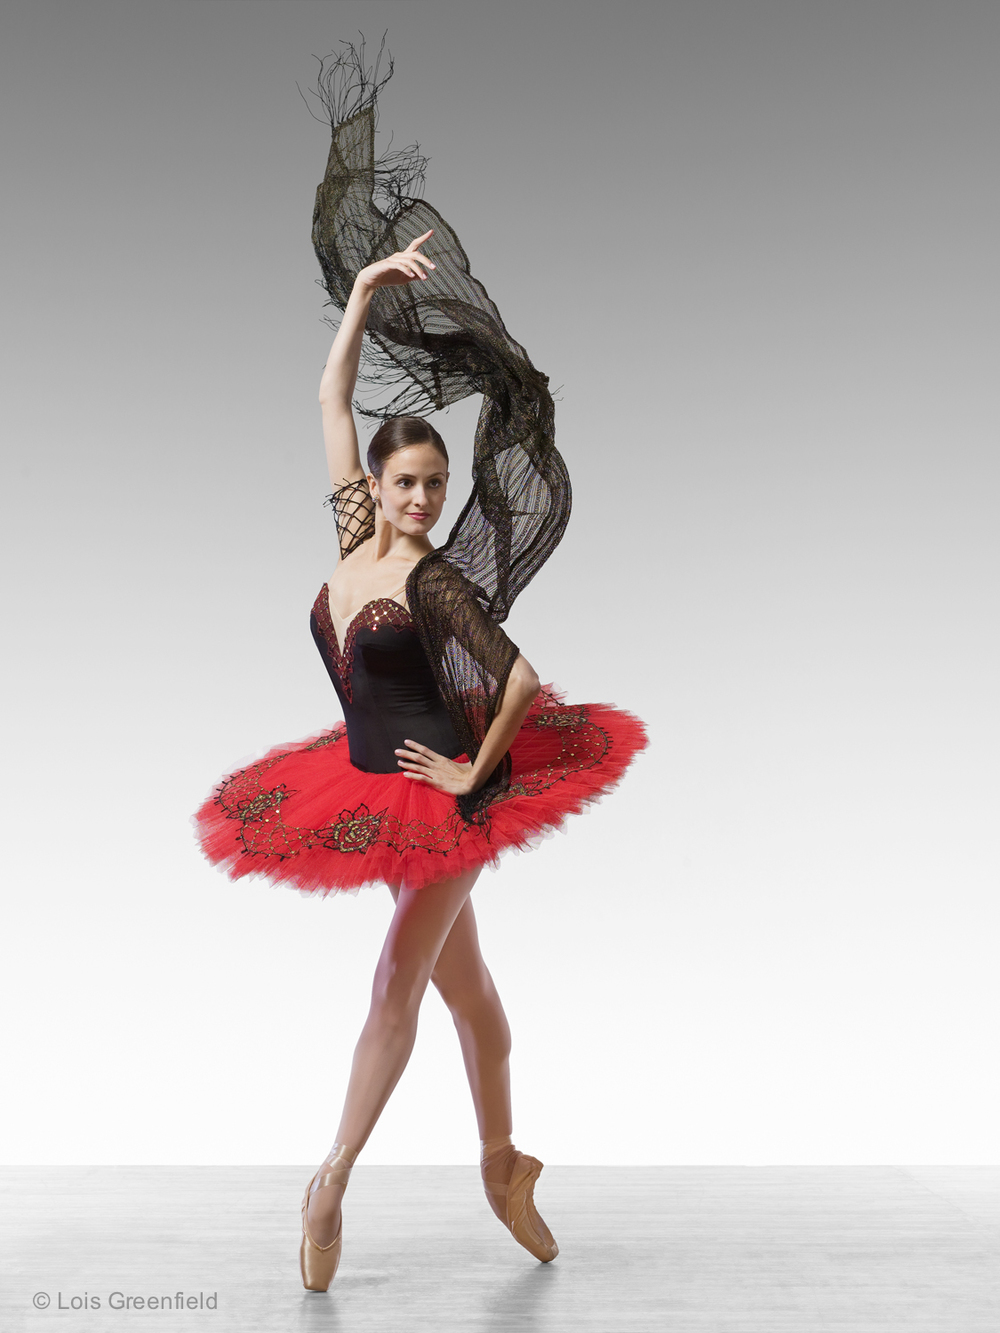 Melanie Hamrick of the AMERICAN BALLET THEATRE